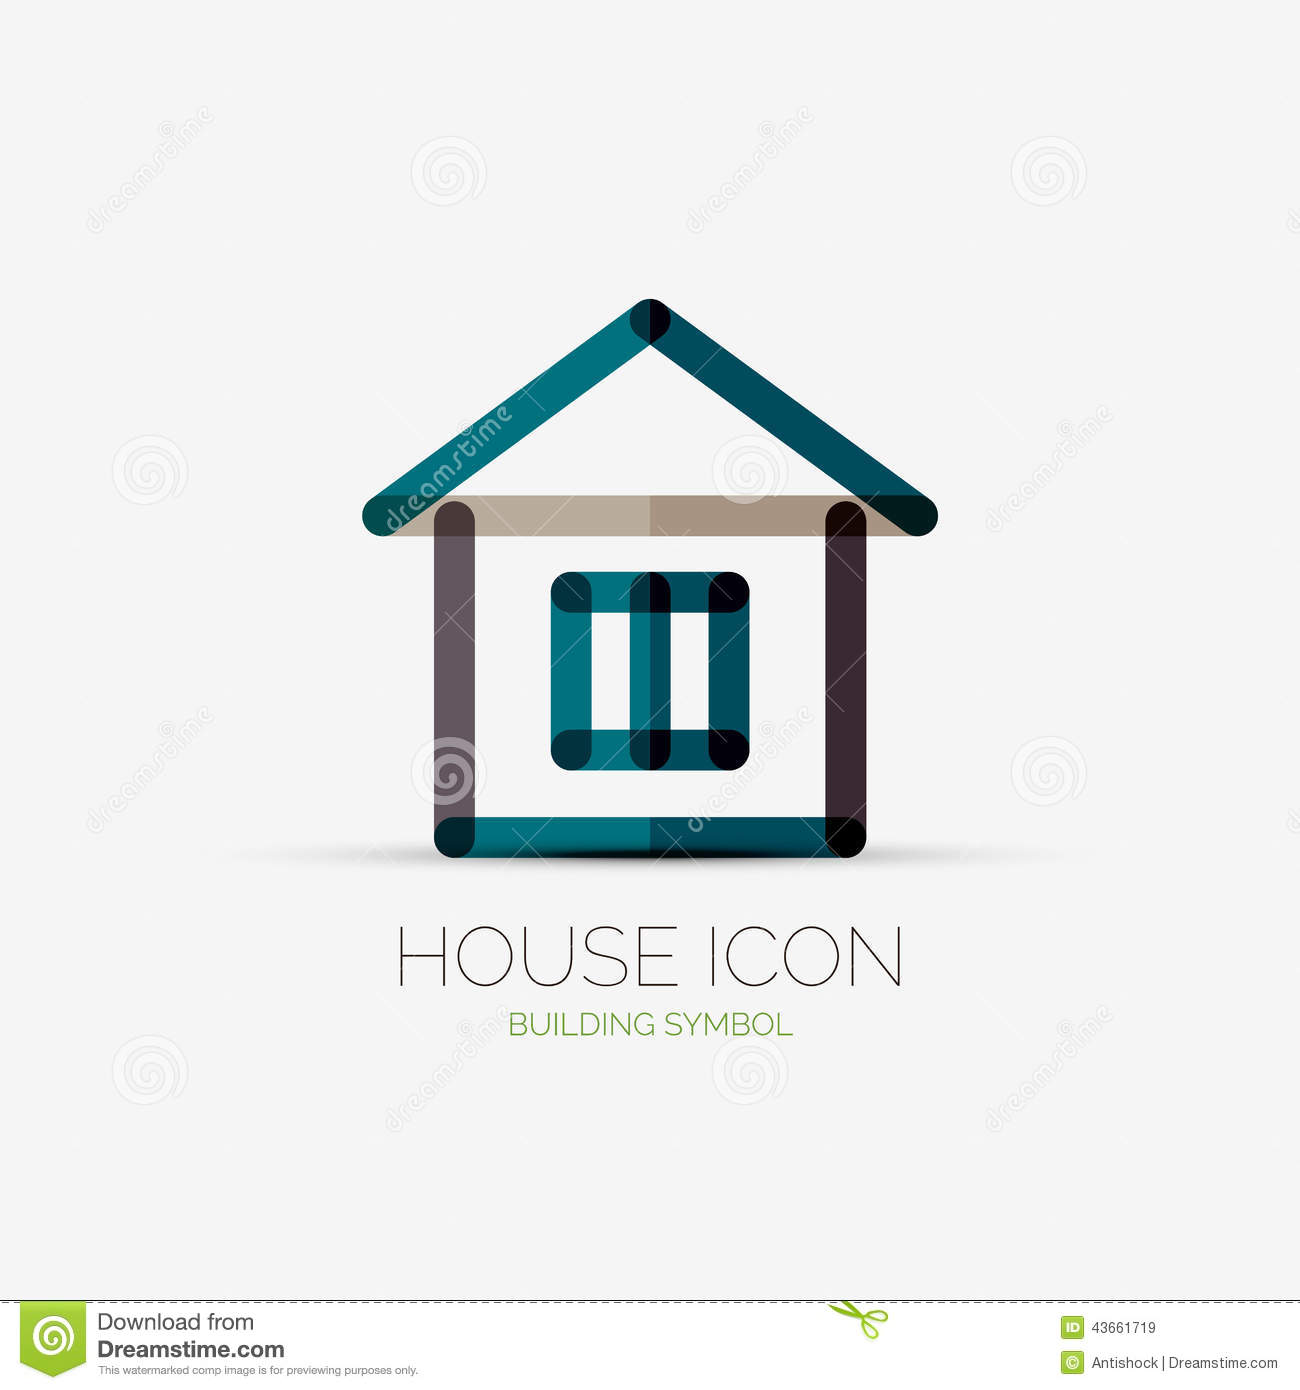 House icon company logo business concept for House design company